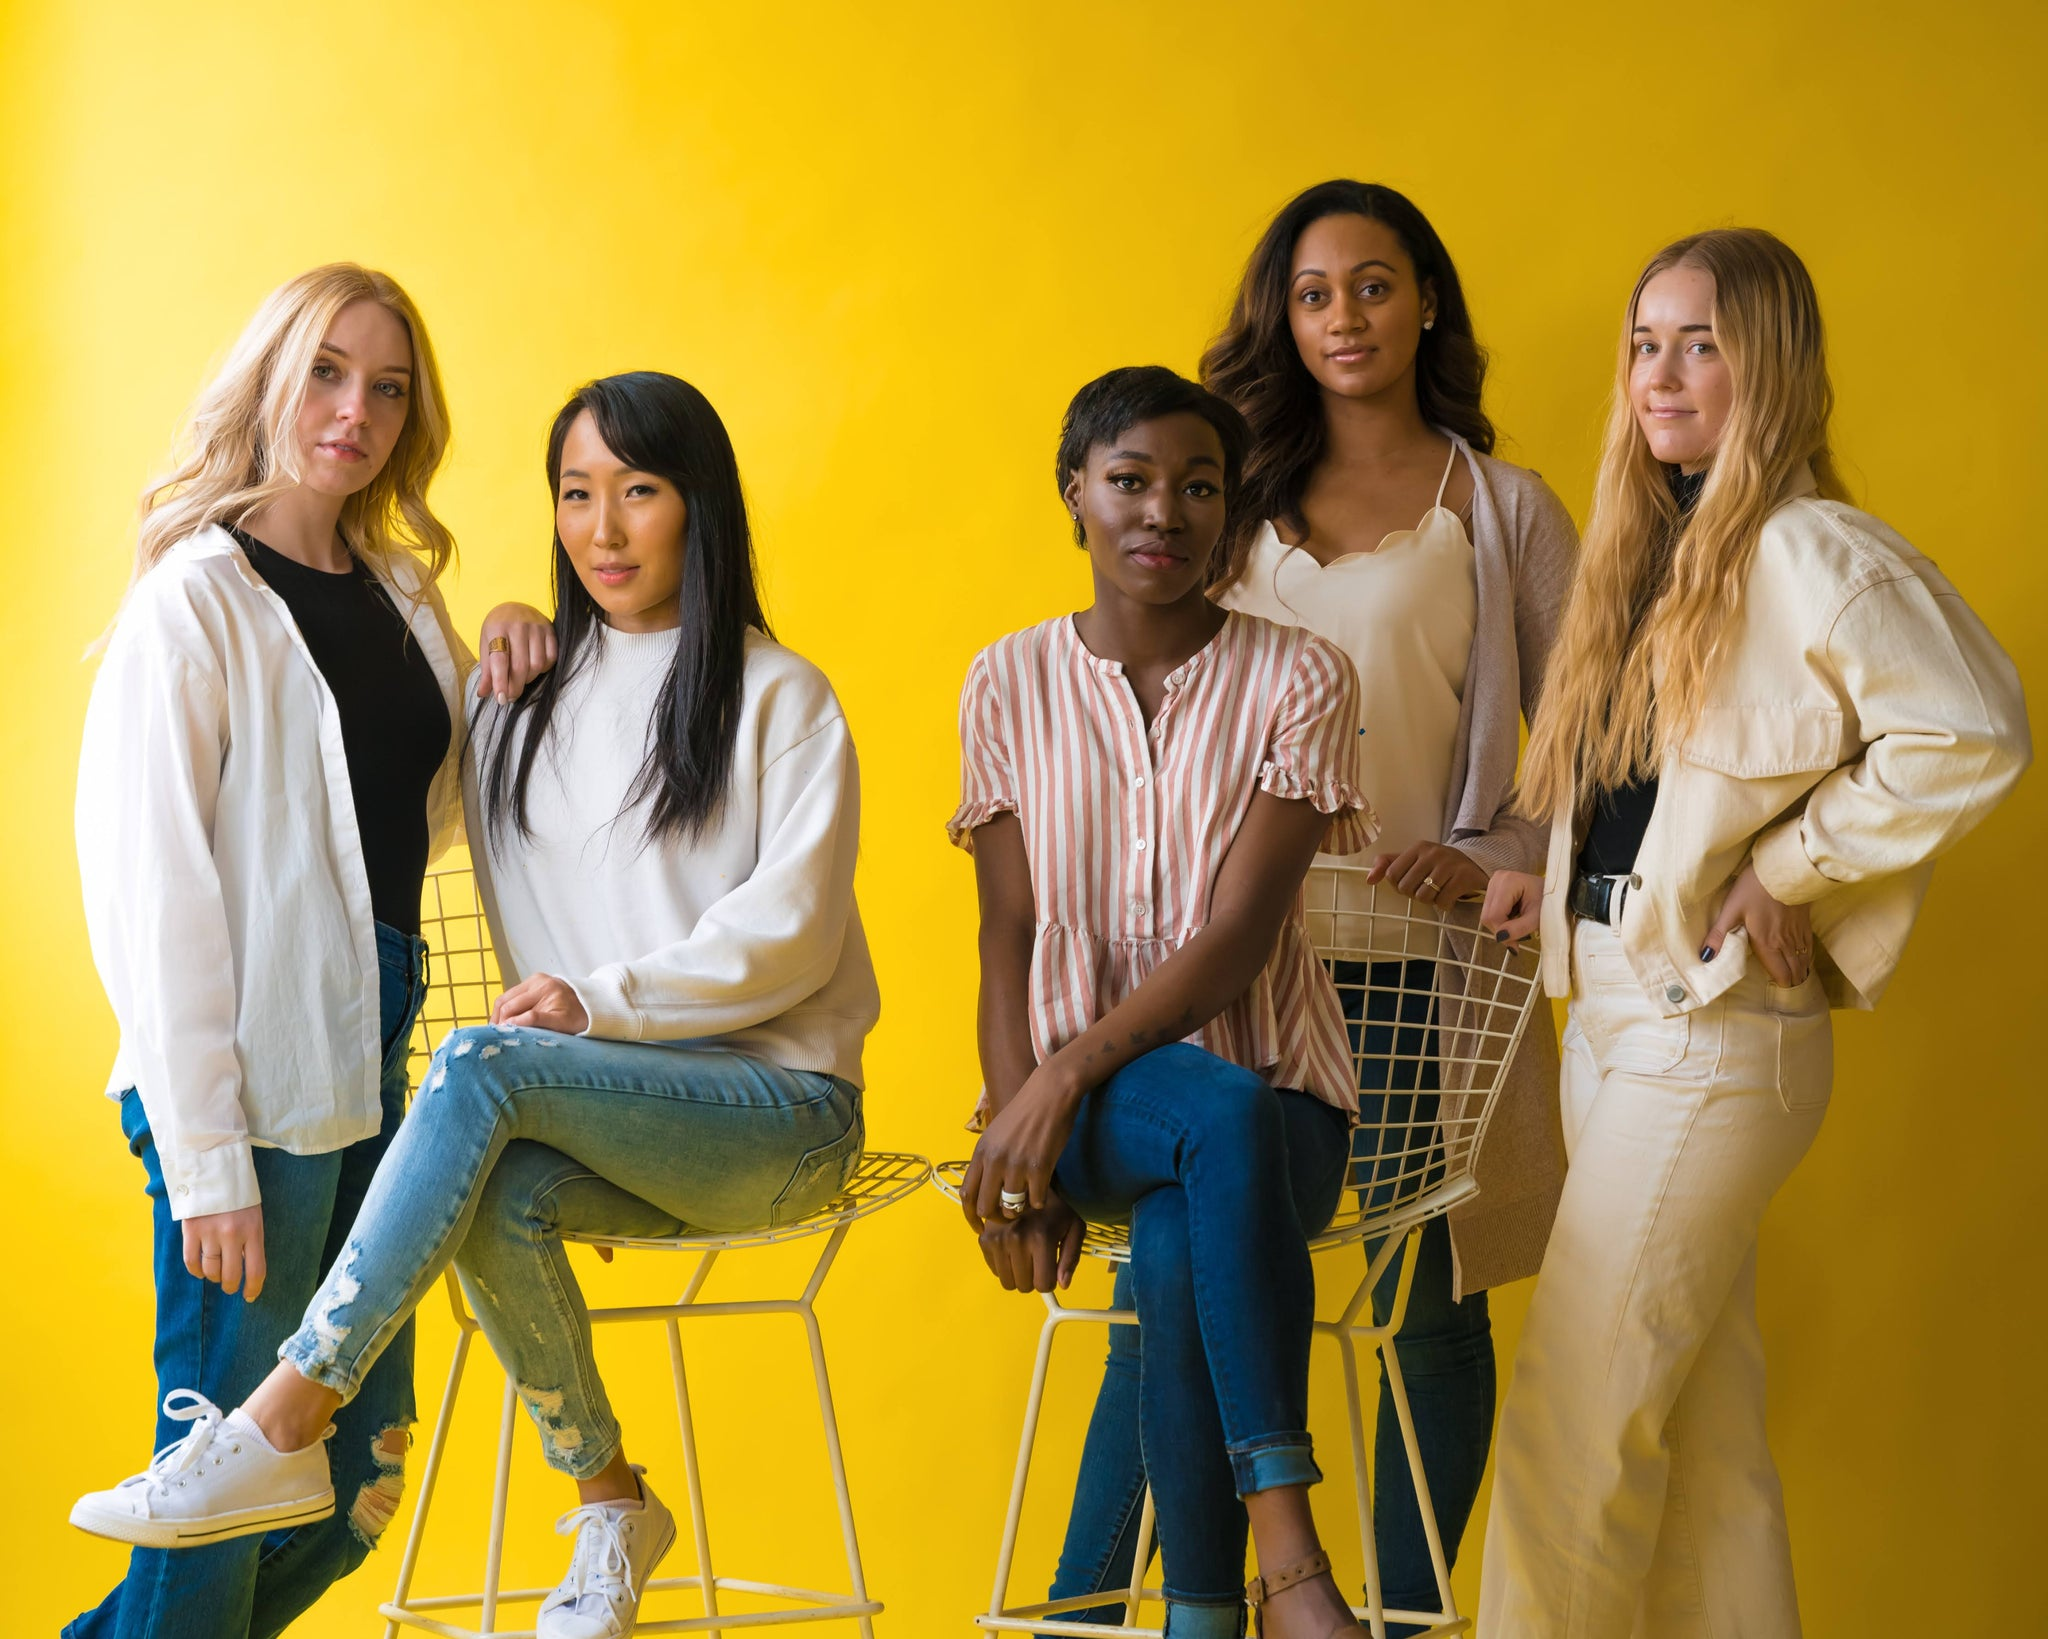 Group of women standing together in a power pose with a yellow background